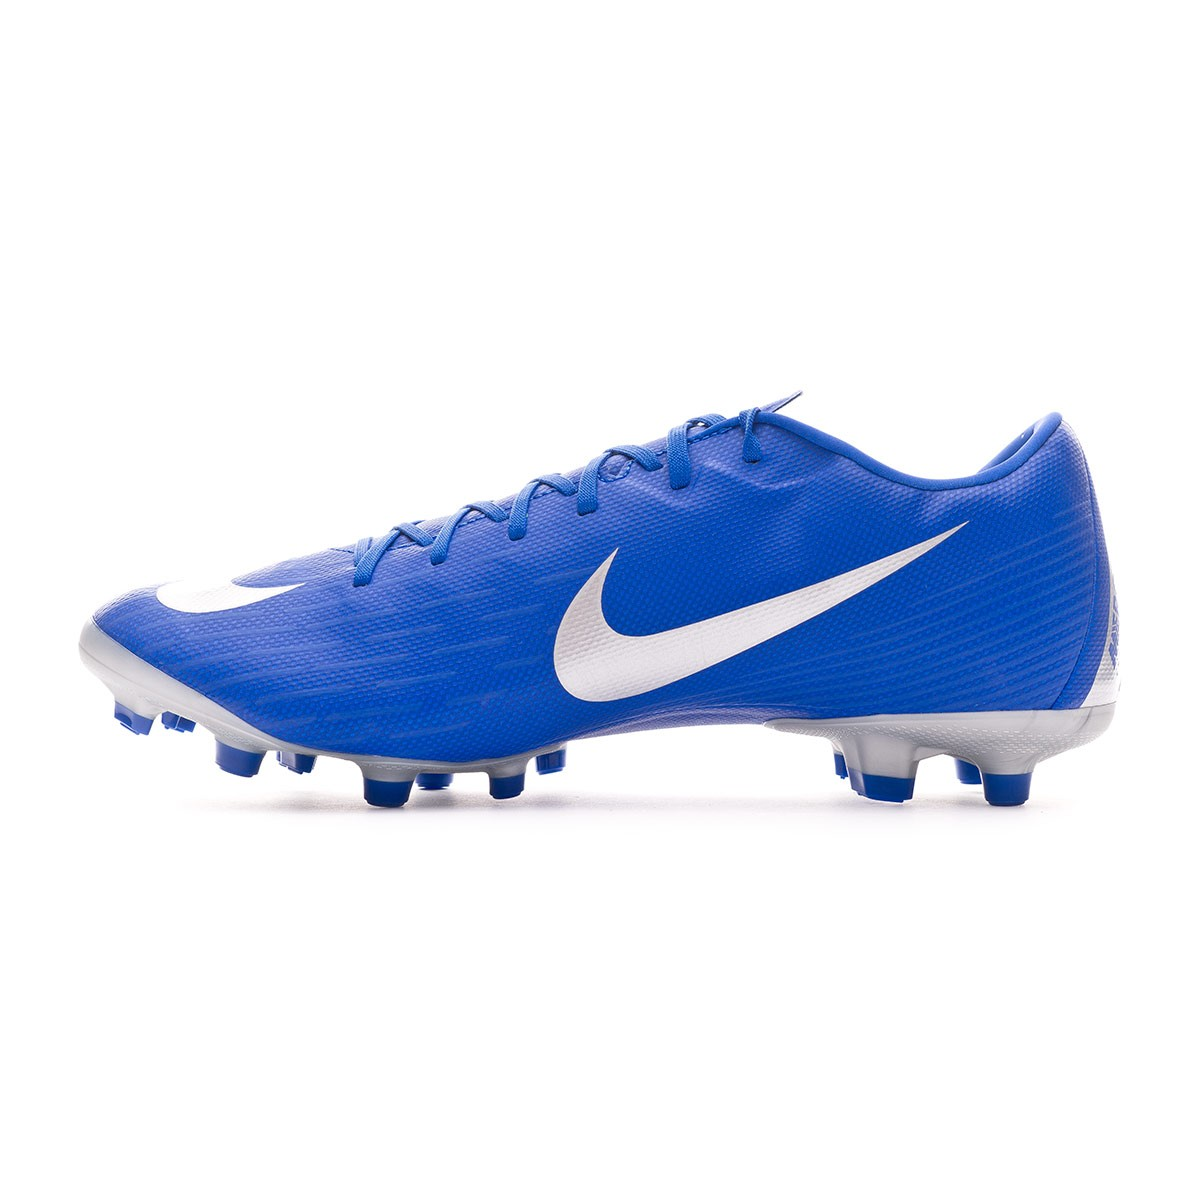 464e1f72f1d Football Boots Nike Mercurial Vapor XII Academy MG Racer blue-Metallic  silver-Black-Volt - Nike Mercurial Superfly